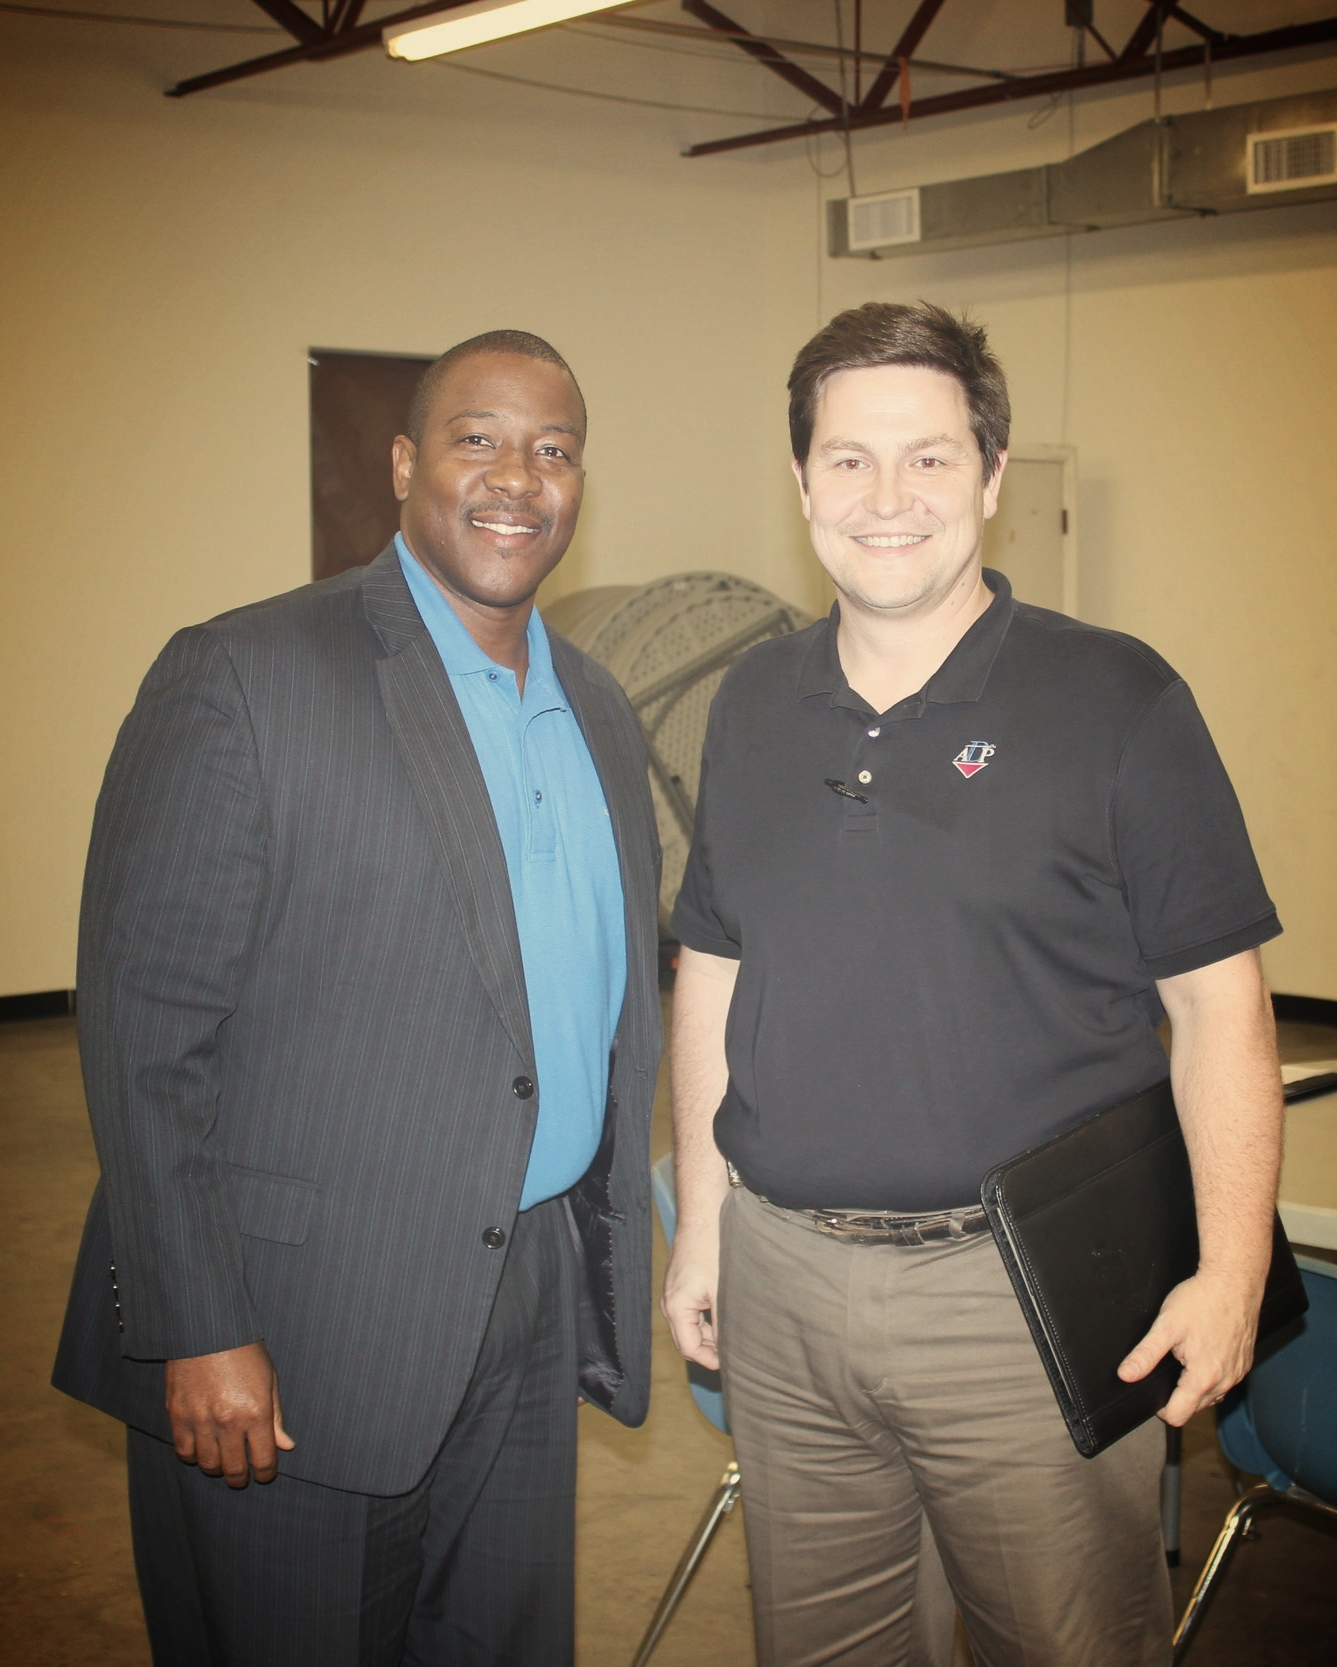 MSMS Executive Director Dr. Germain McConnell and ADP Production Manager James Pettit.